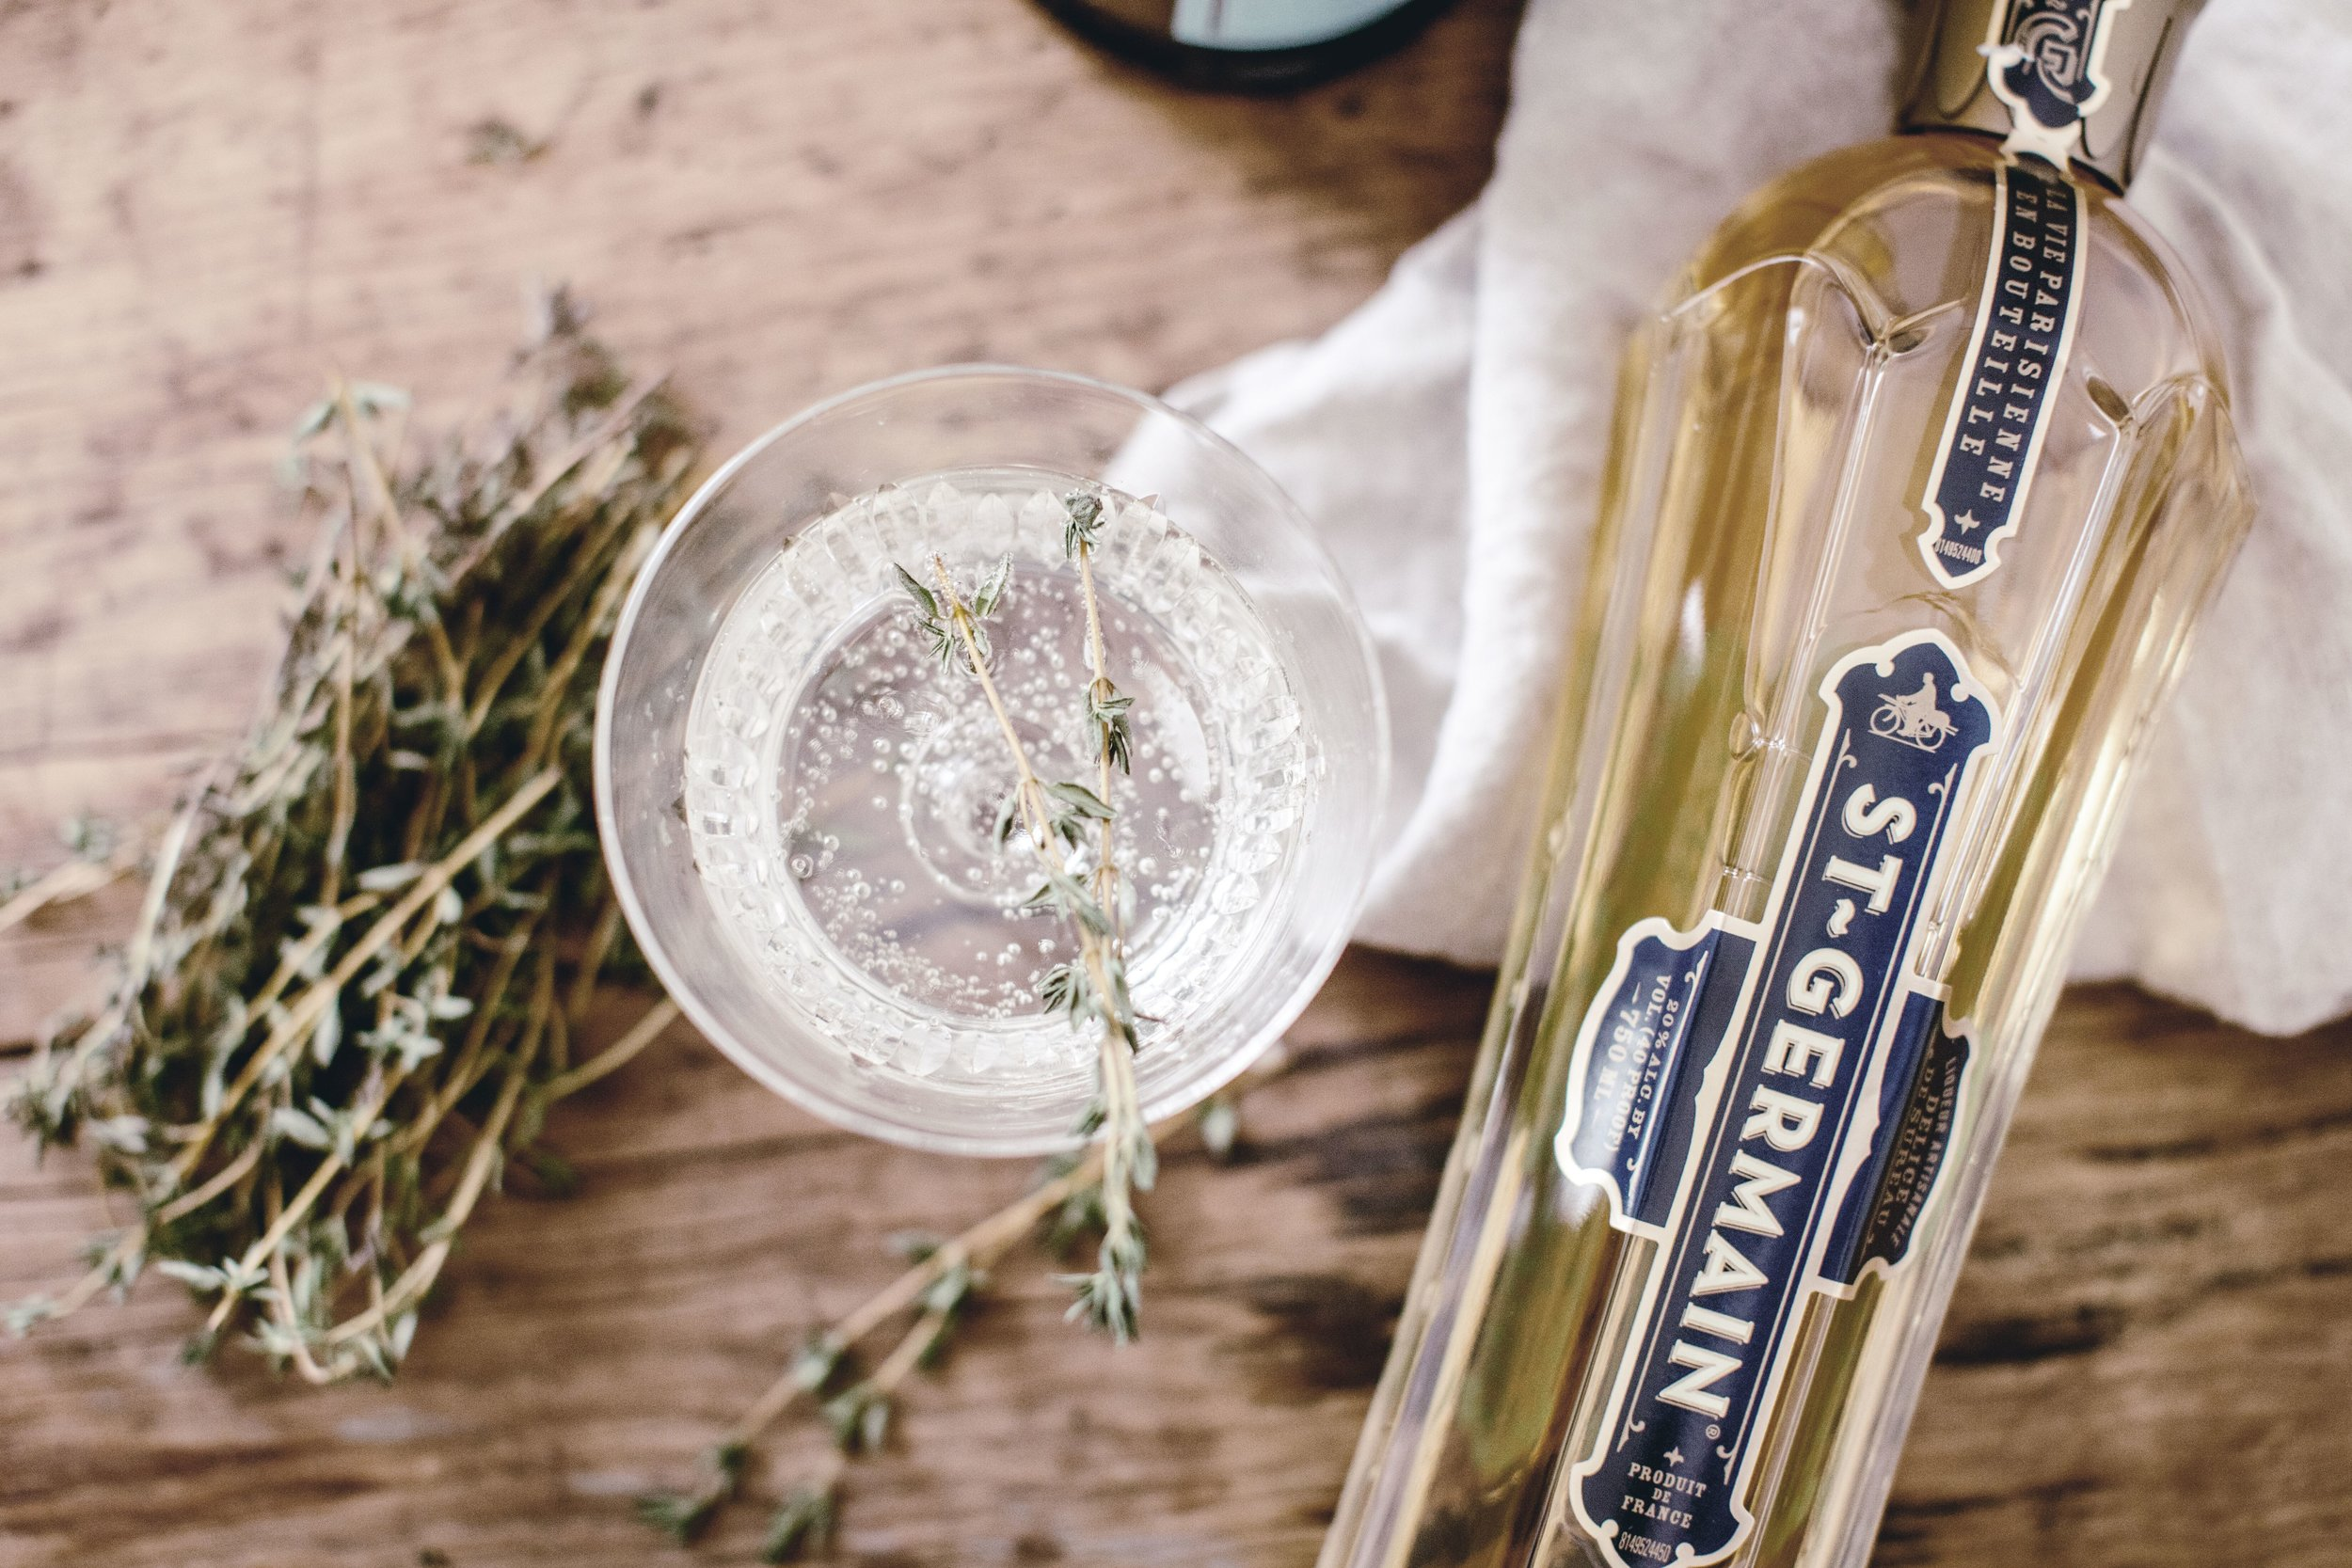 St. Germaine + Prosecco cocktail by heirloomed